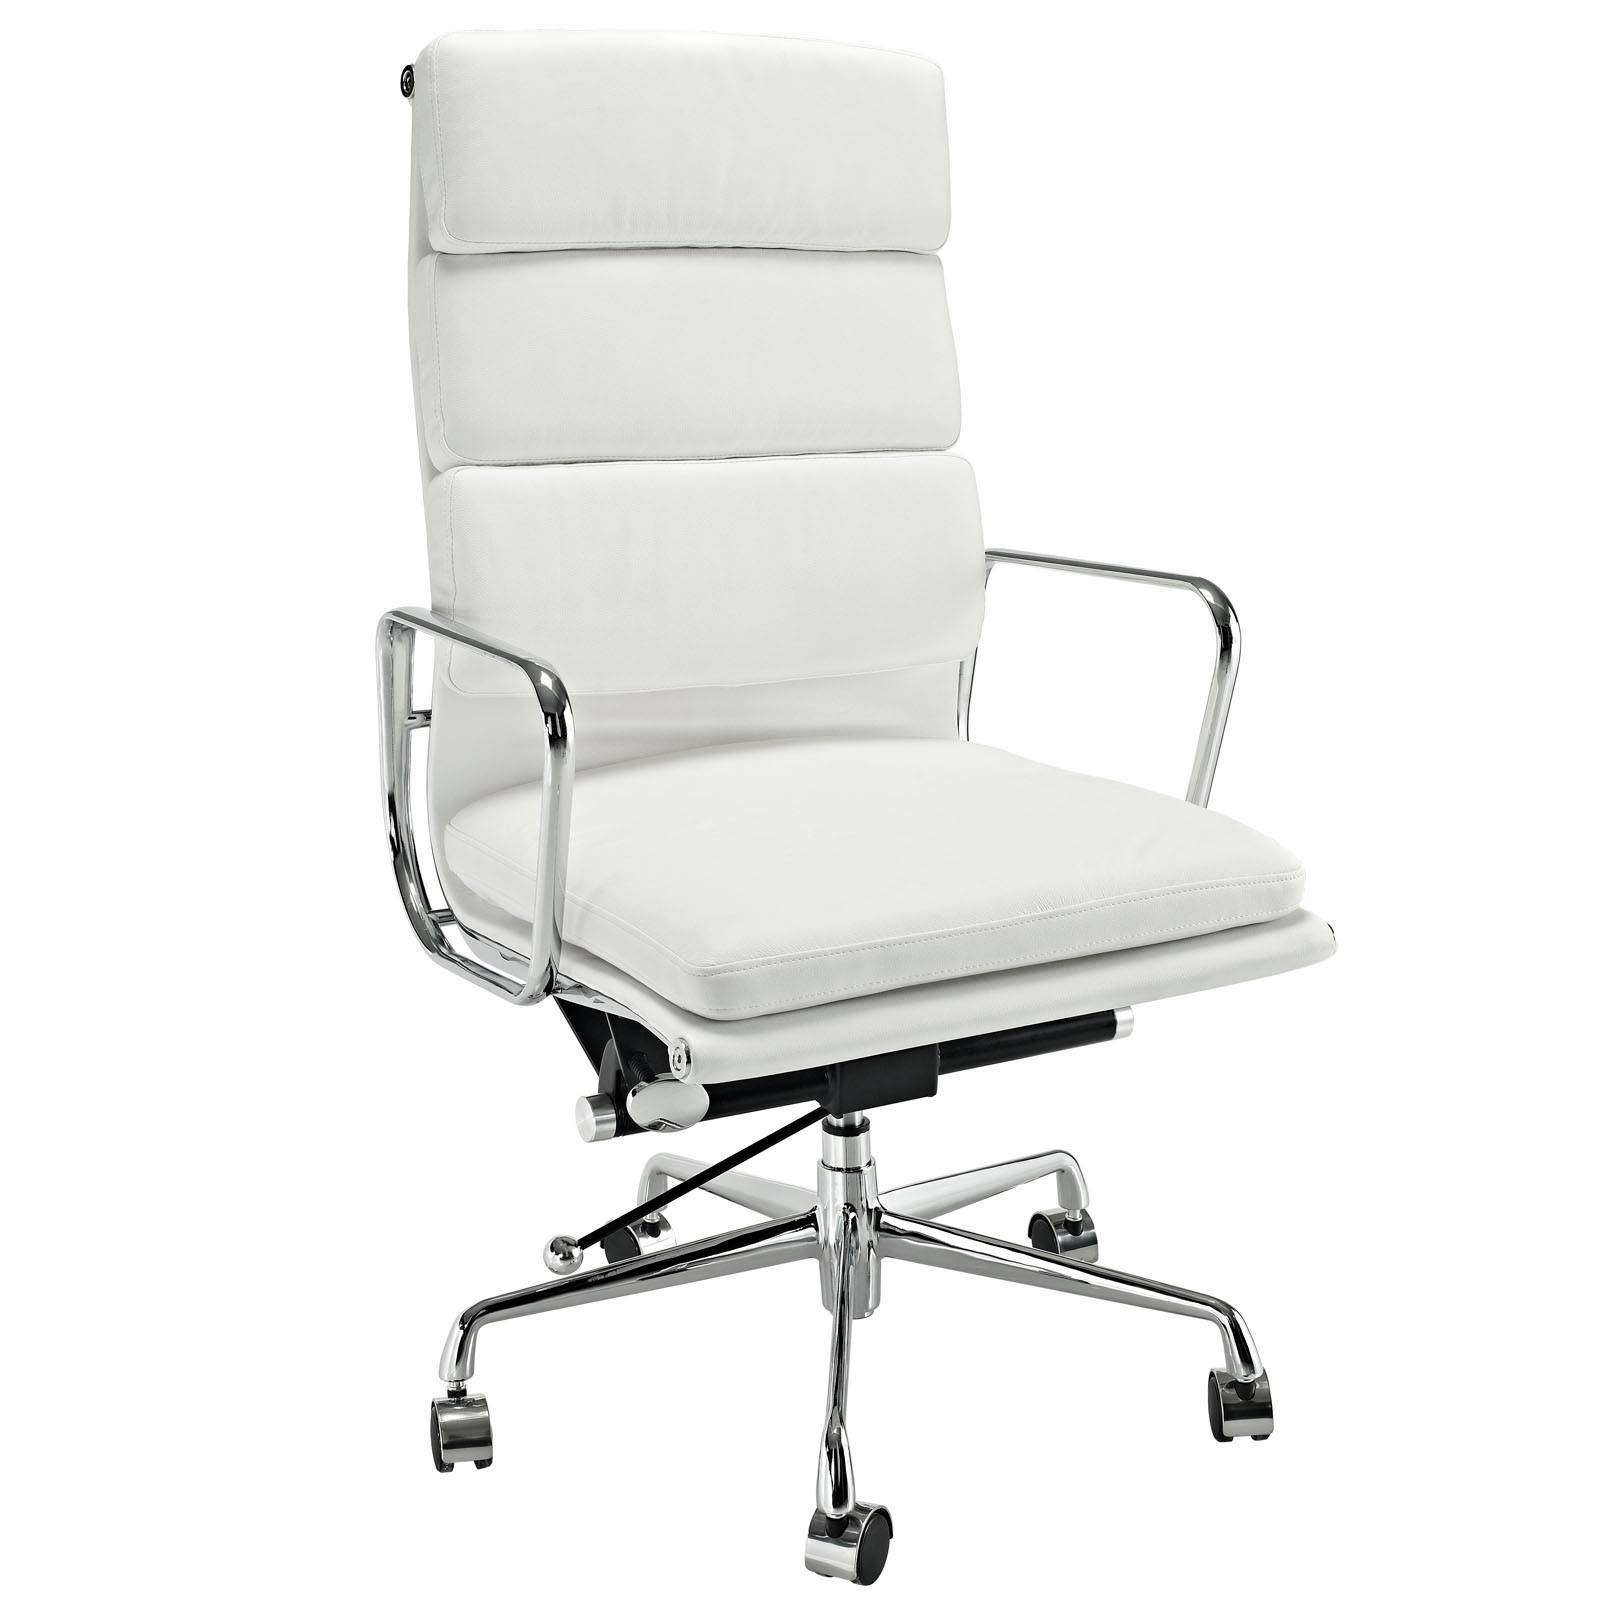 MOD Classic Padded Executive Office Chair